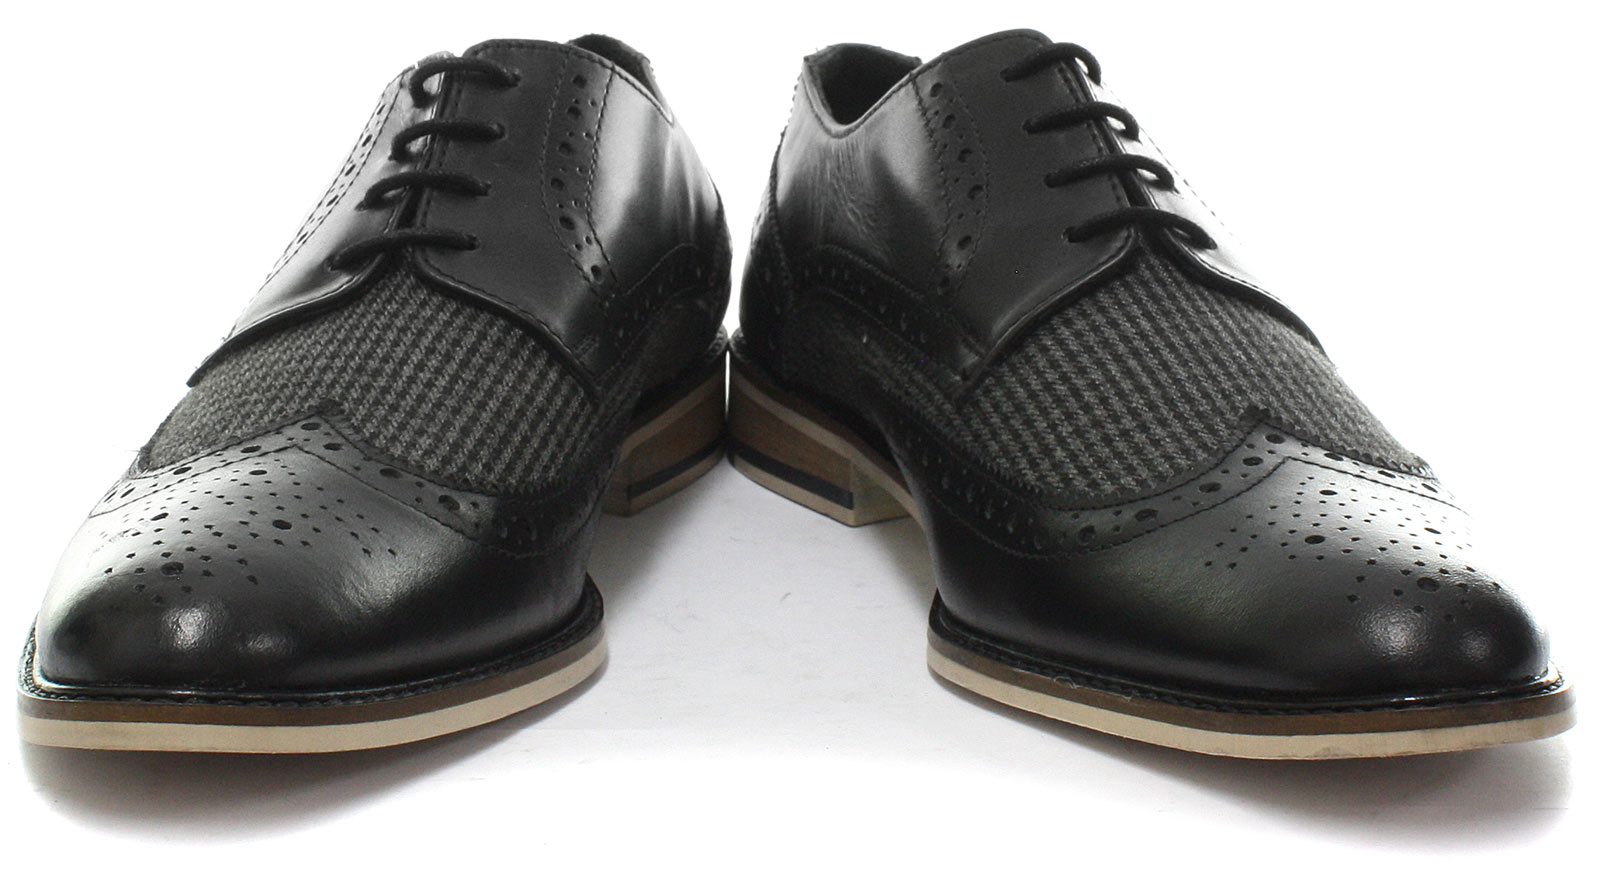 New-Roamers-4-Eye-Wing-Cap-Gibson-Black-Mens-Brogue-Shoes-ALL-SIZES miniature 2